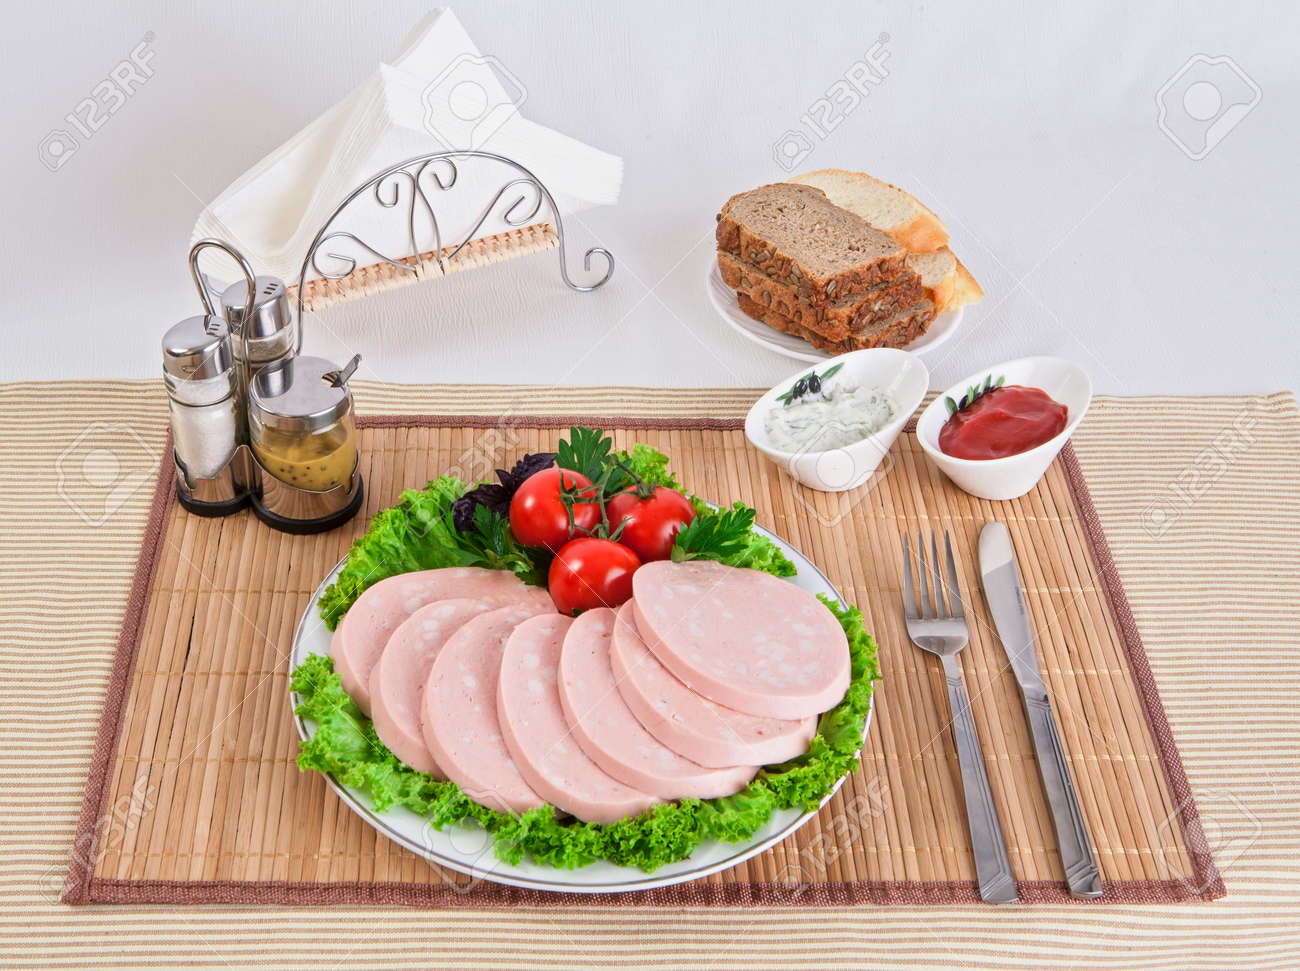 Sliced boiled sausages with tomatoes on lettuce leaves are laid